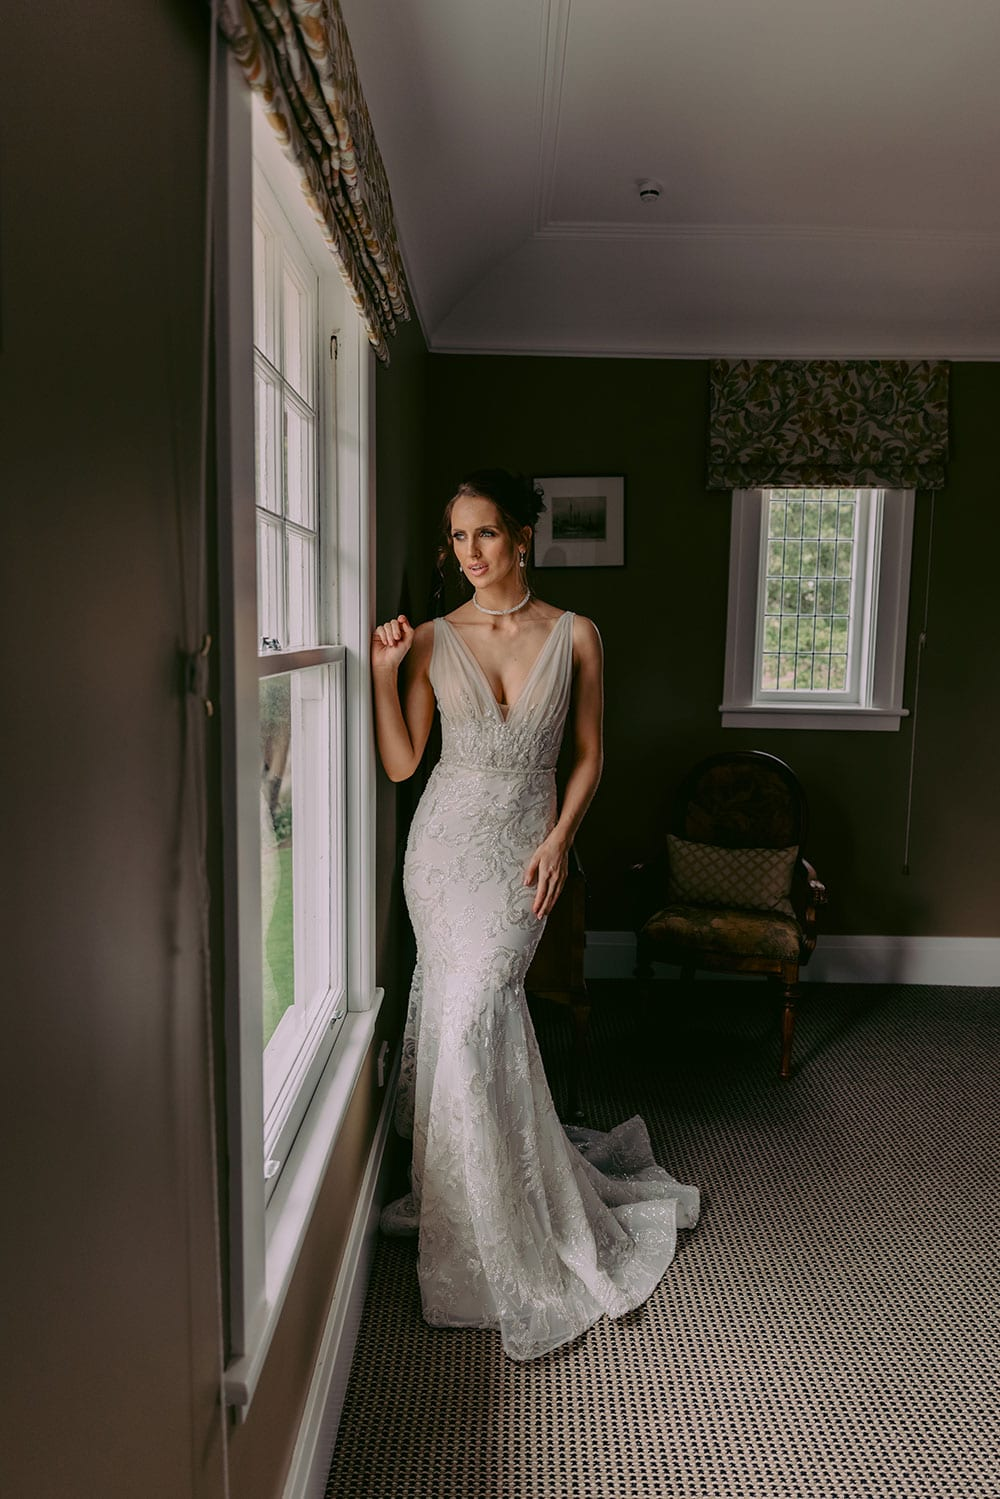 Zana Wedding gown from Vinka Design - Stunning full-lace form-fitting wedding dress. Hand appliqued delicate sequins & beads with platinum embroidery across the front and back of the bodice, Swarovski buttons on the illusion tulle back. Model wearing gown inside boutique room.